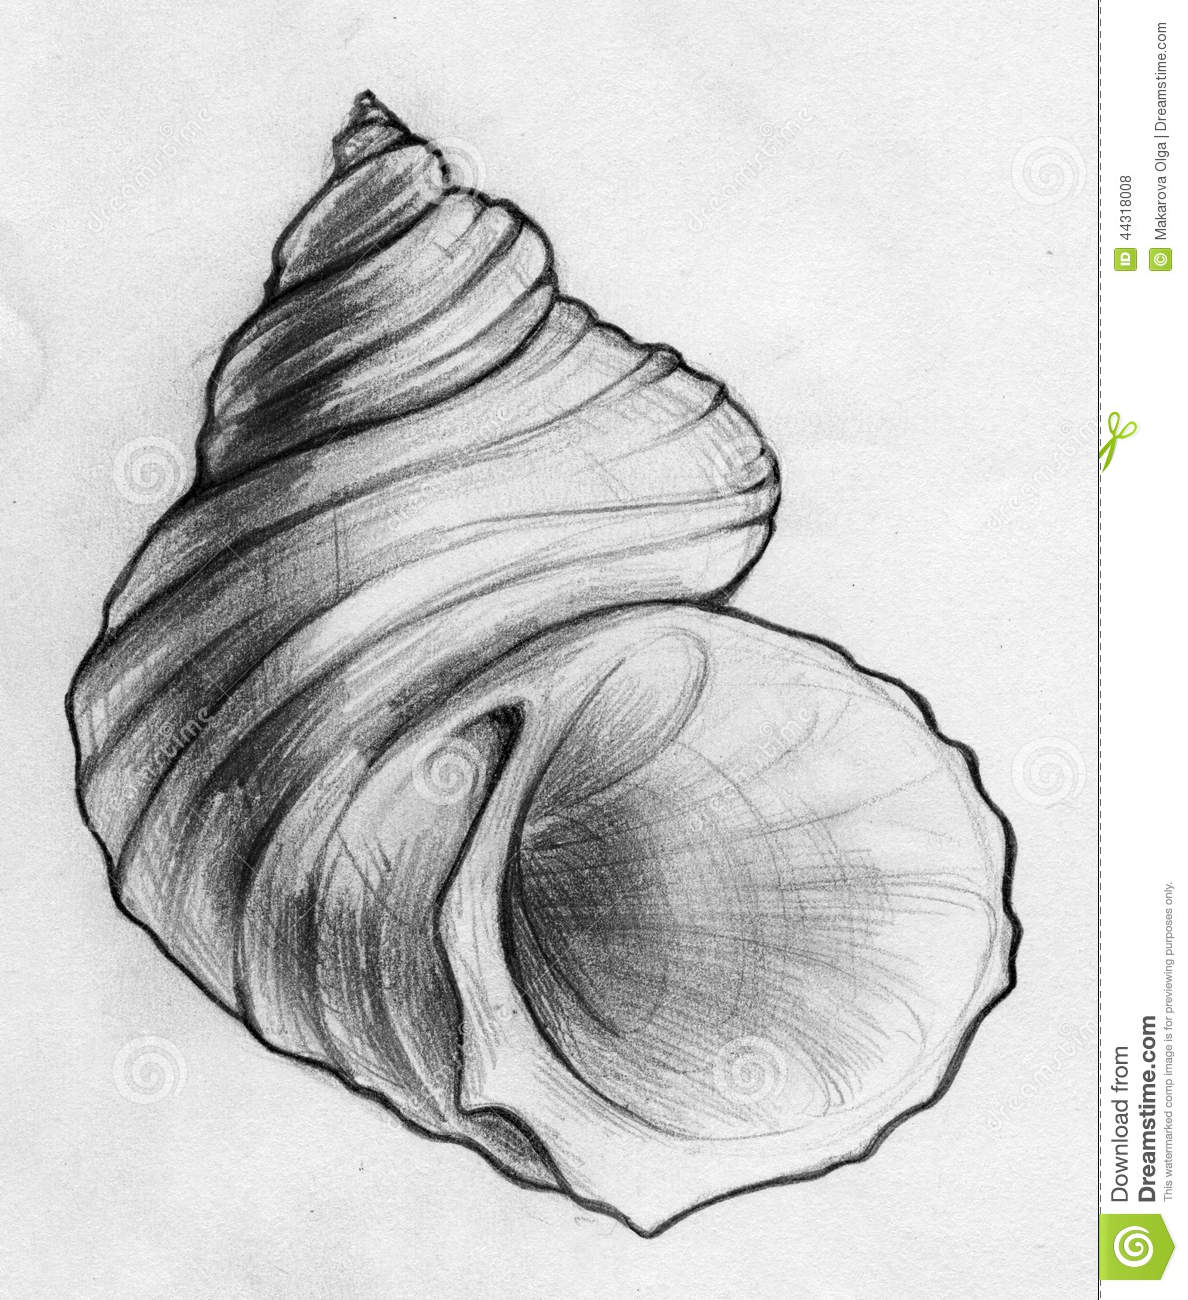 Drawn shell Study drawings Done 44318008 Shell